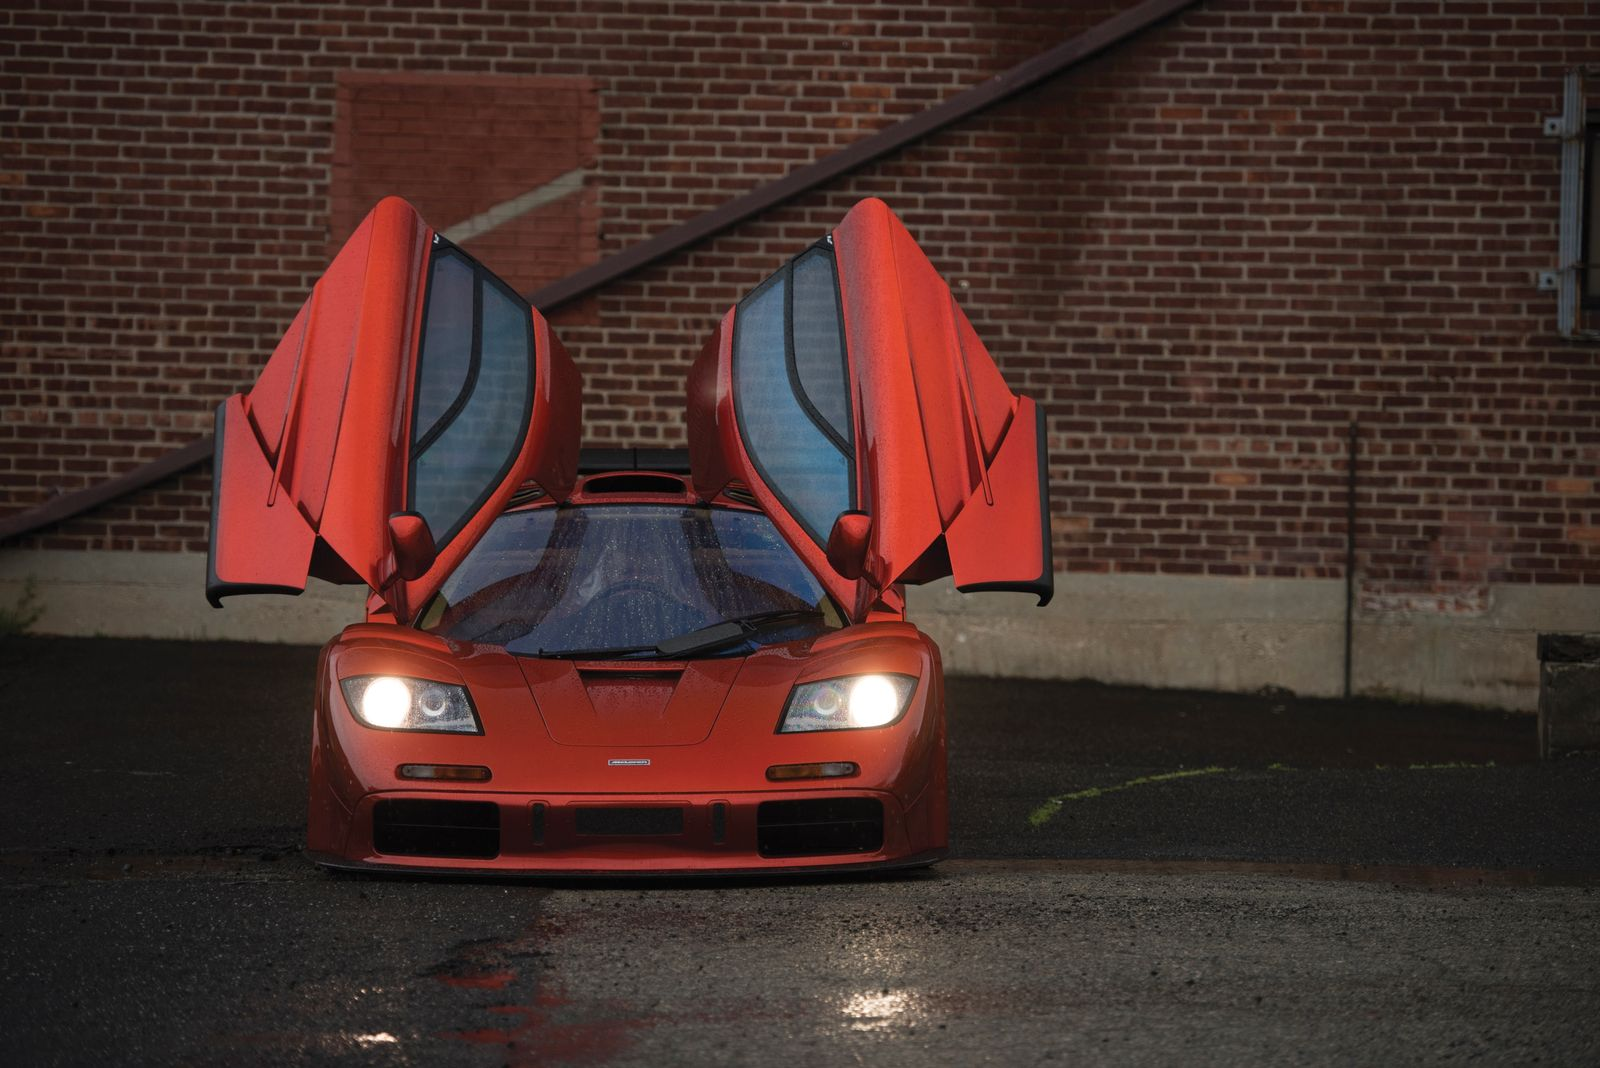 1998 McLaren F1 LM-Specification